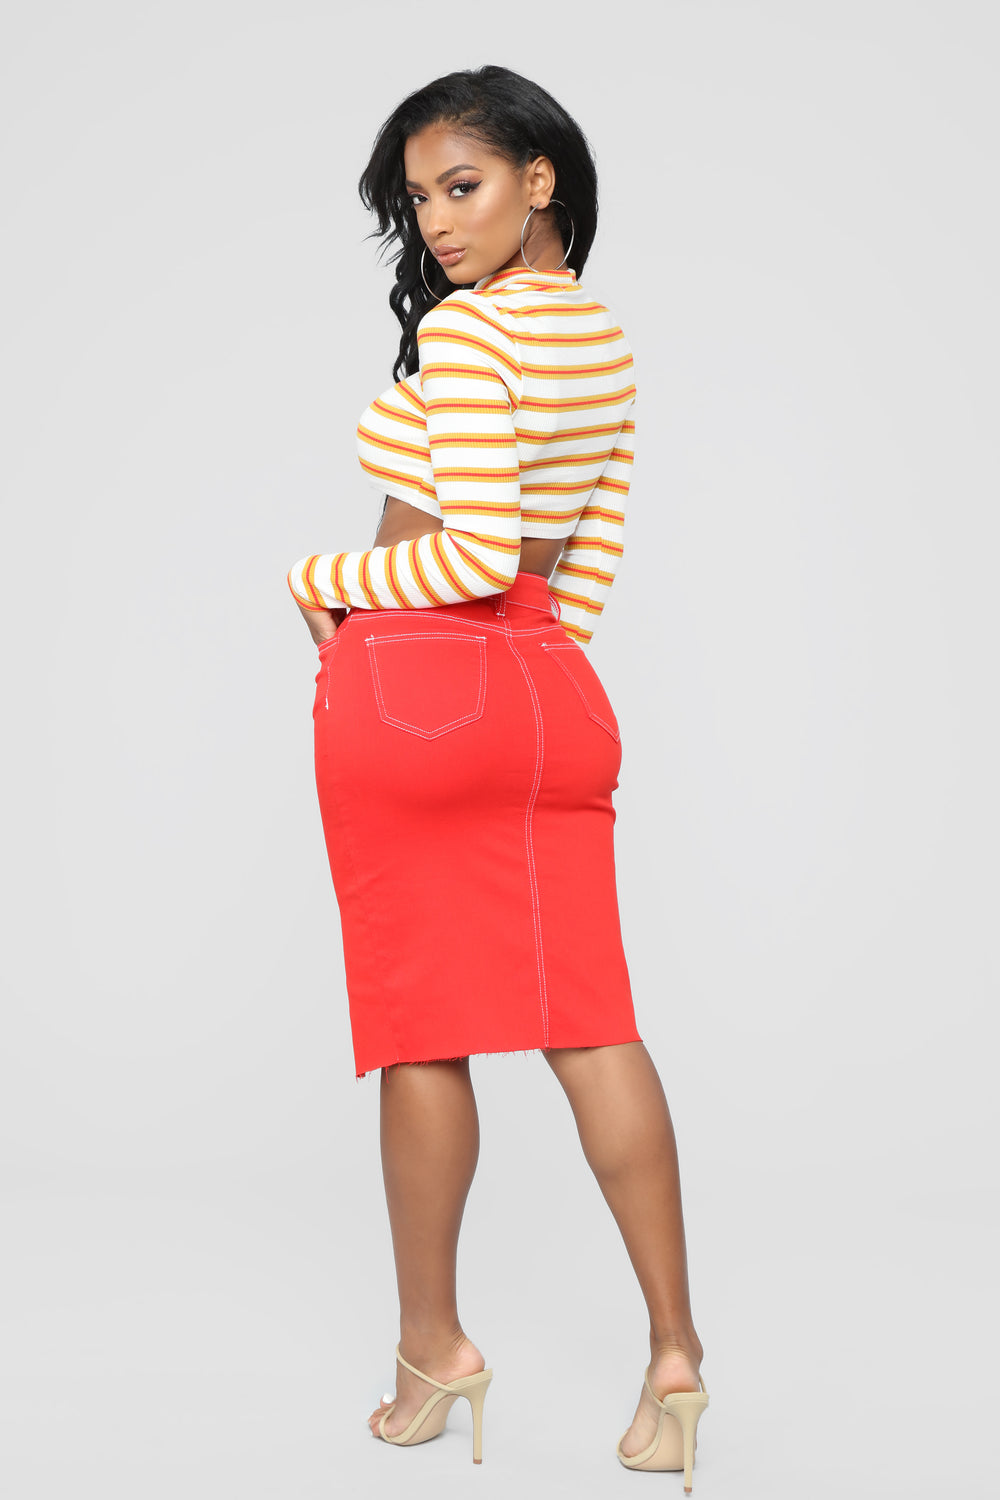 Contrasting Views Skirt - Red